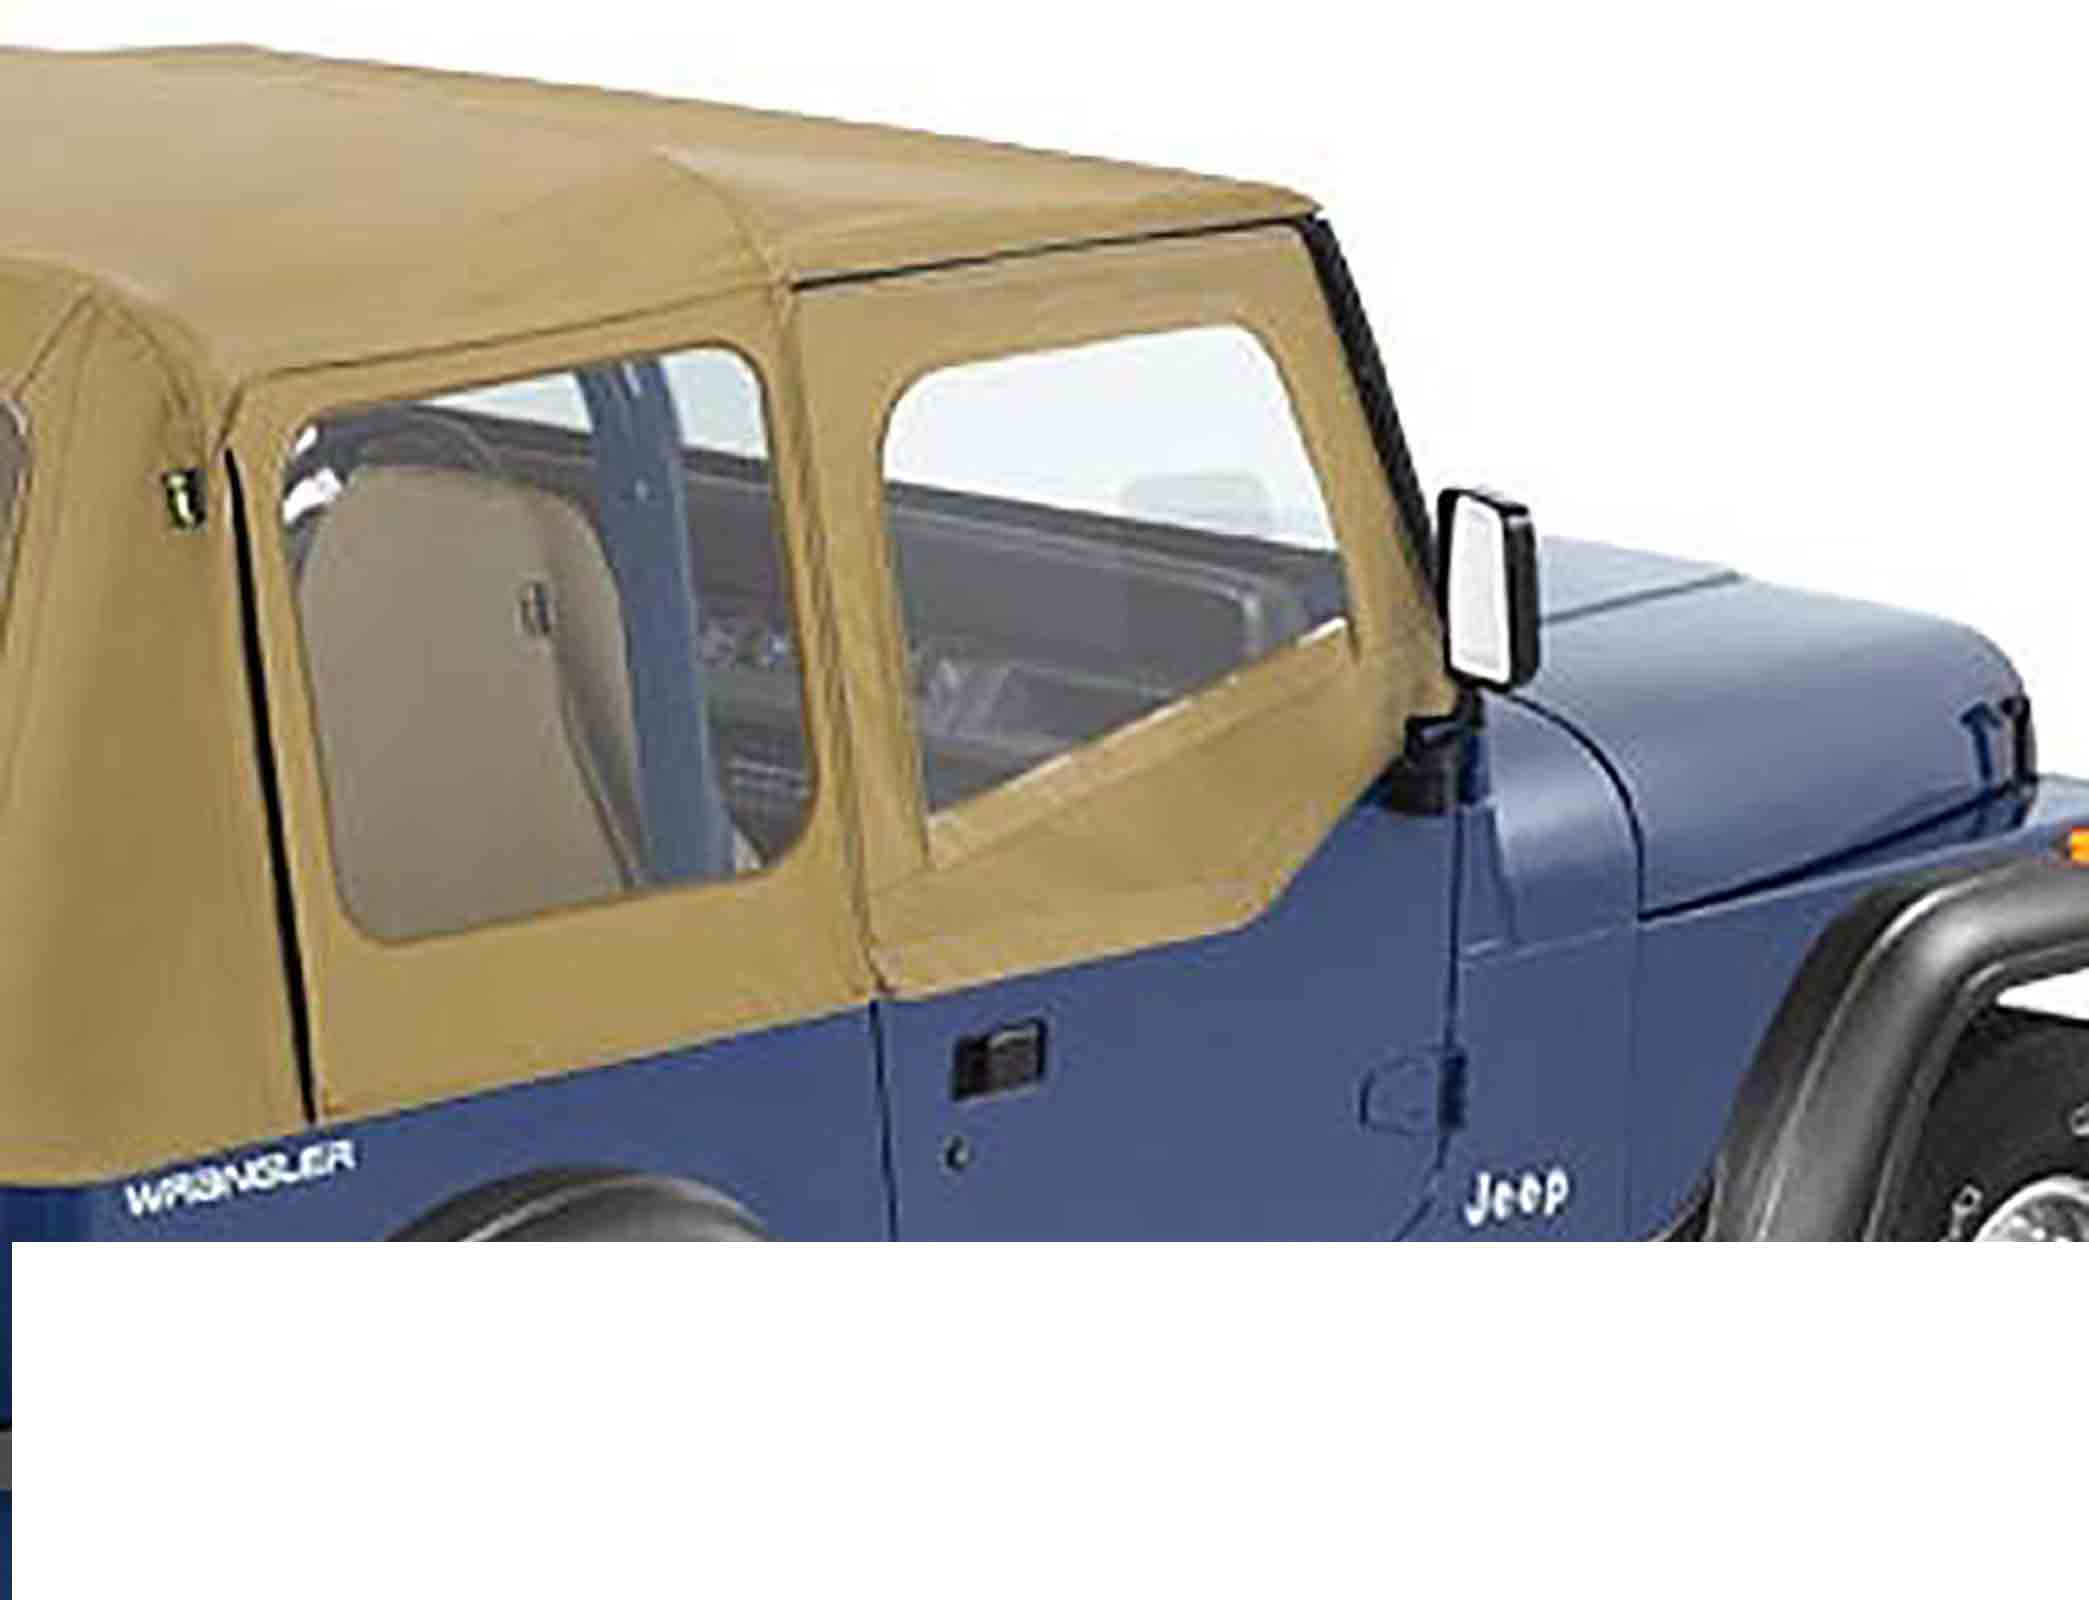 Mezza porta superiore wrangler yj 88 95 per mezzoporto adatto per softtop soft top capottina original